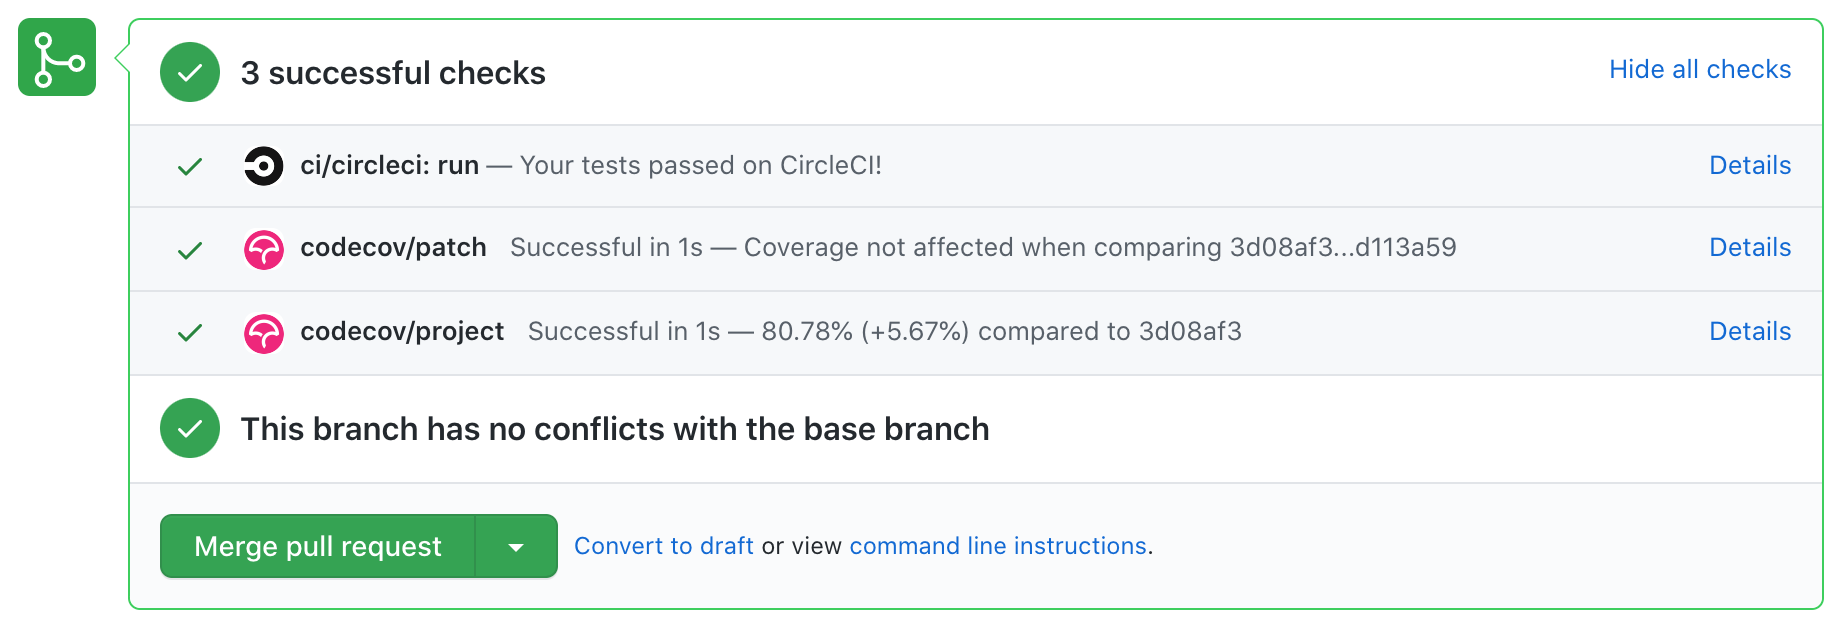 CI and code coverage status checks